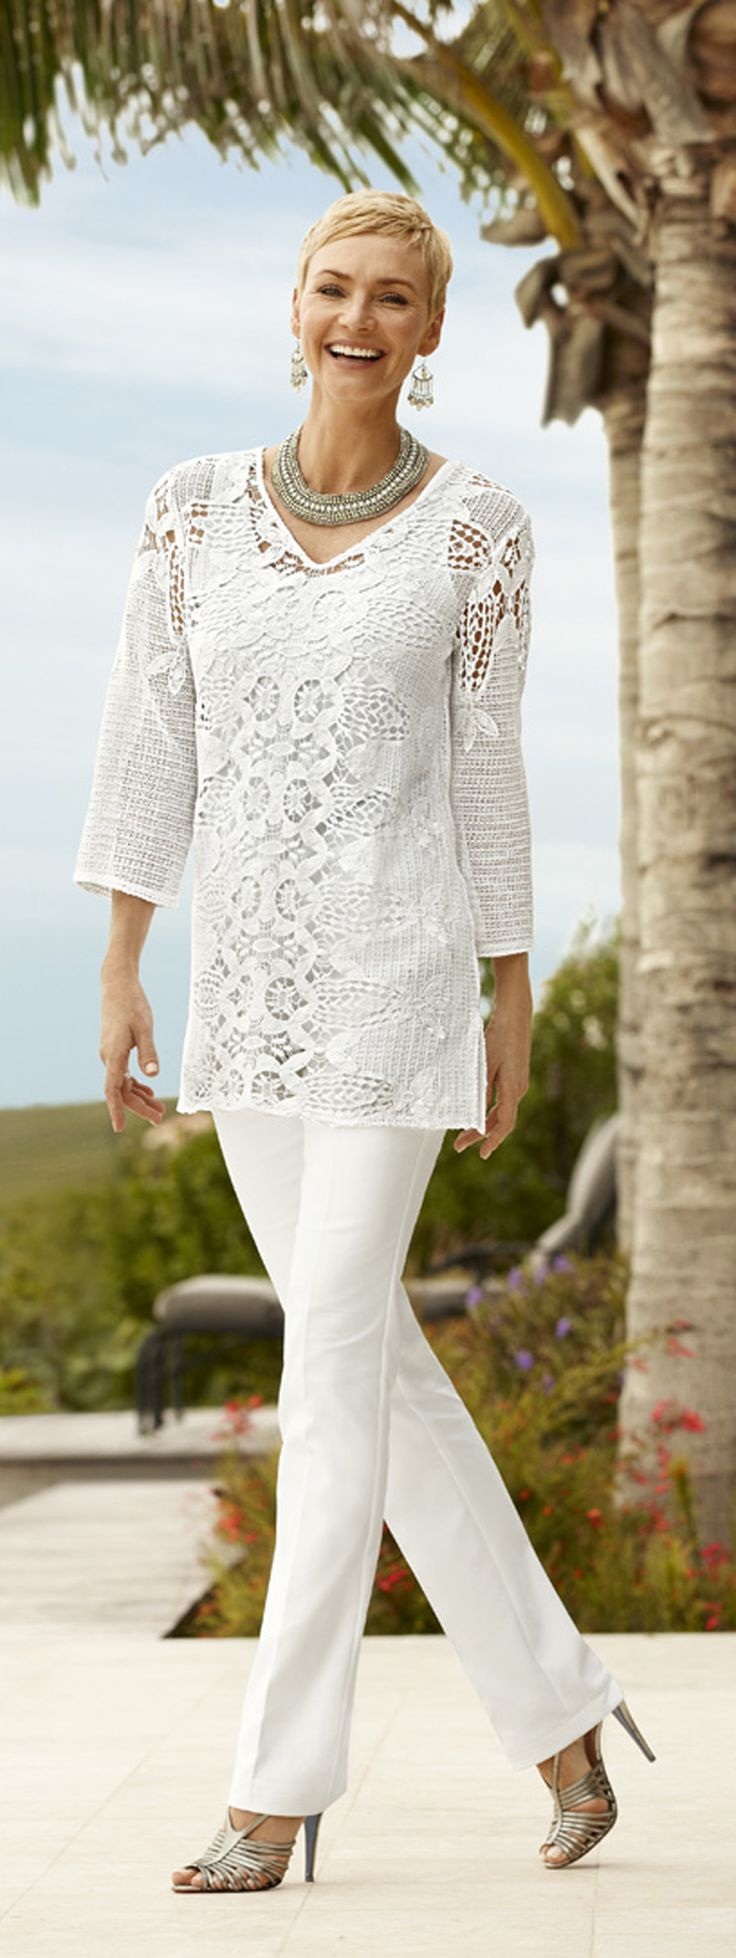 Pair a tunic with slimming pants. You'll look taller and thinner. Chico's Summer 2014